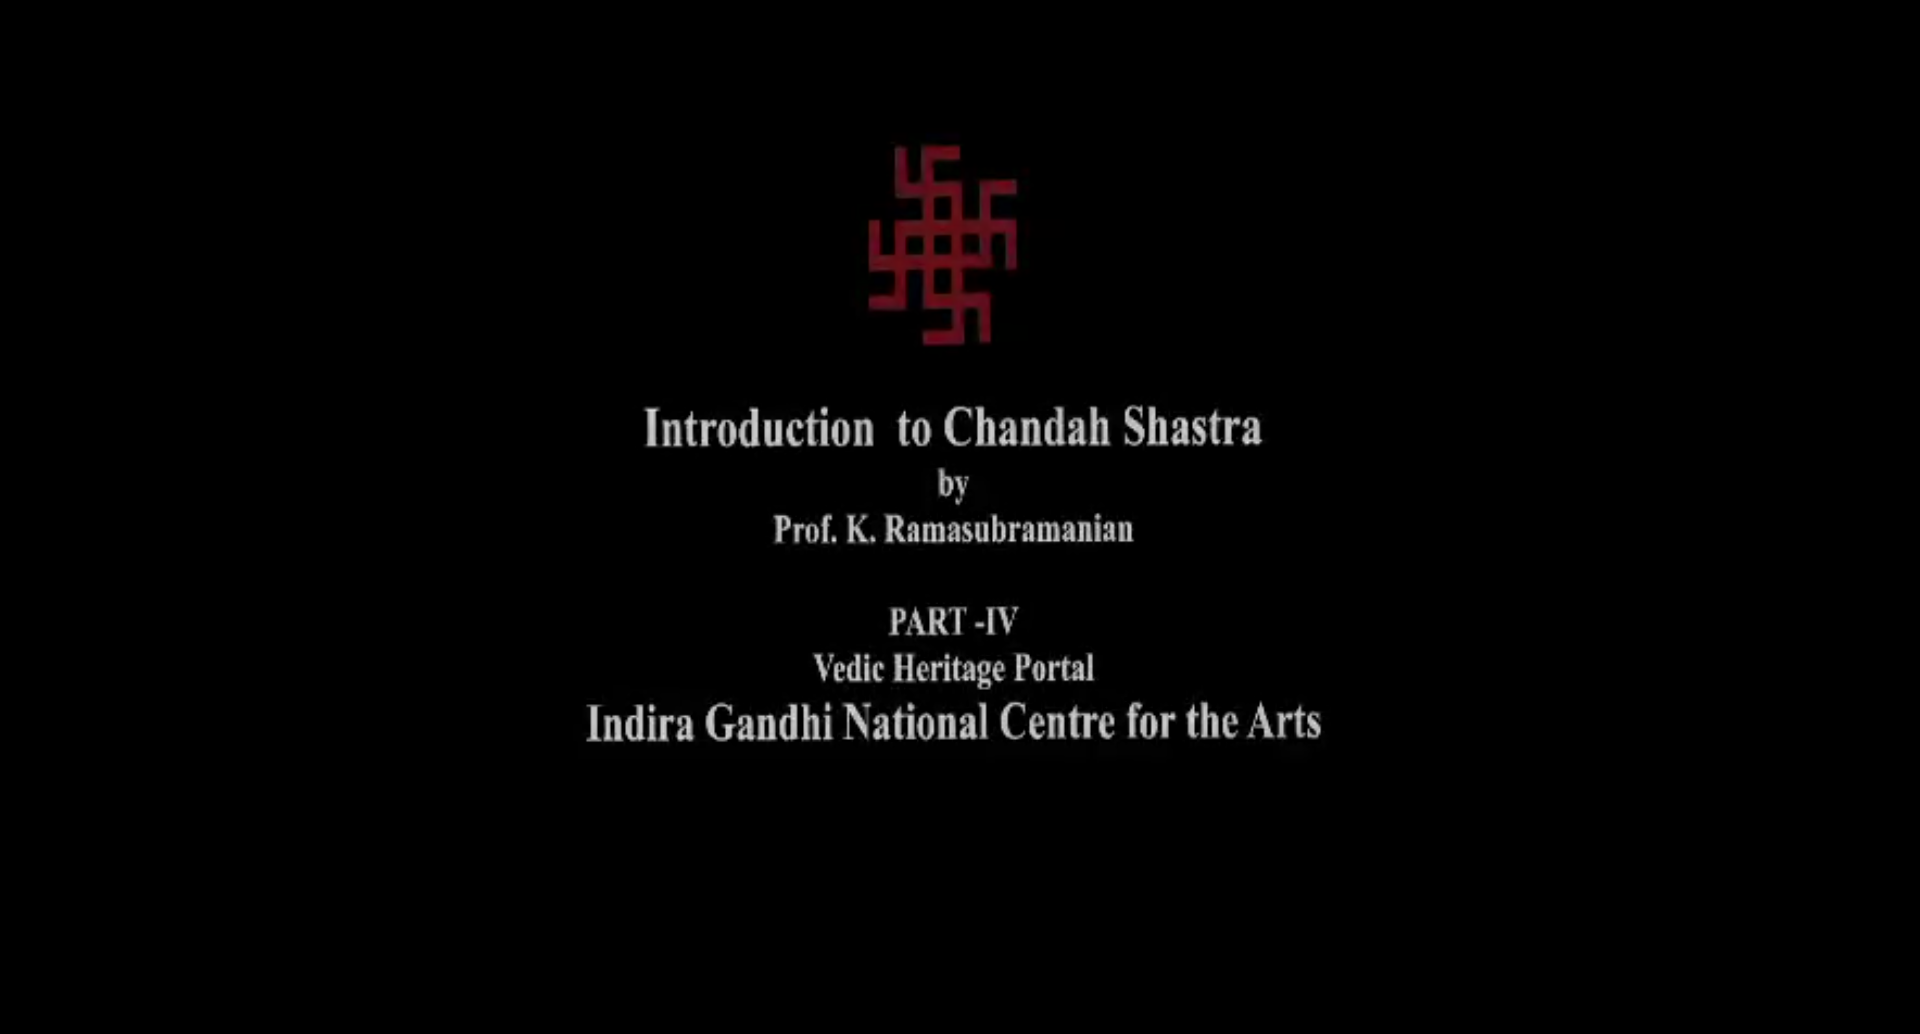 Chandshashtra (Part IV)